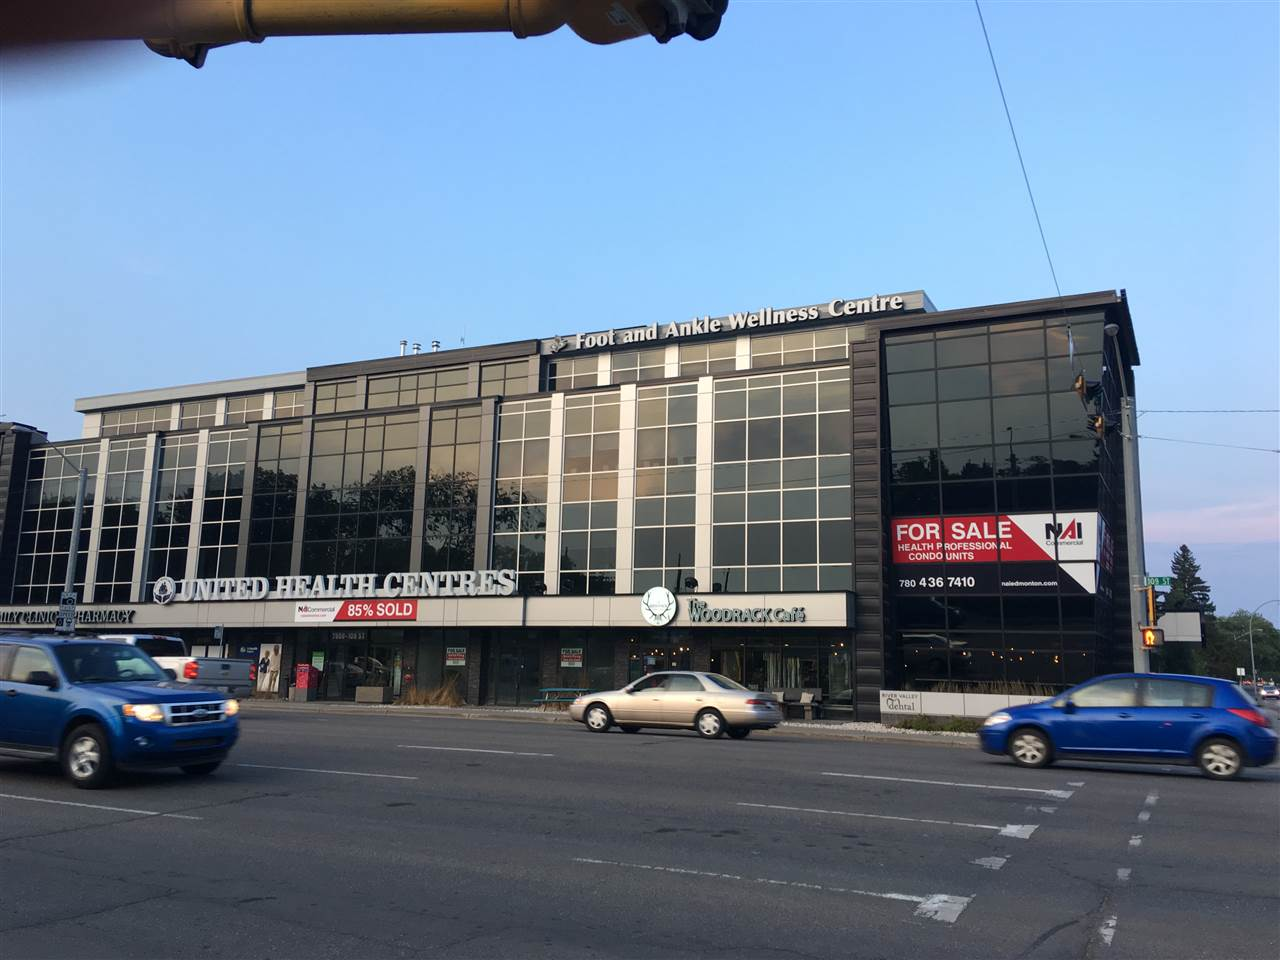 Retail Property for Sale, MLS® # E4139970